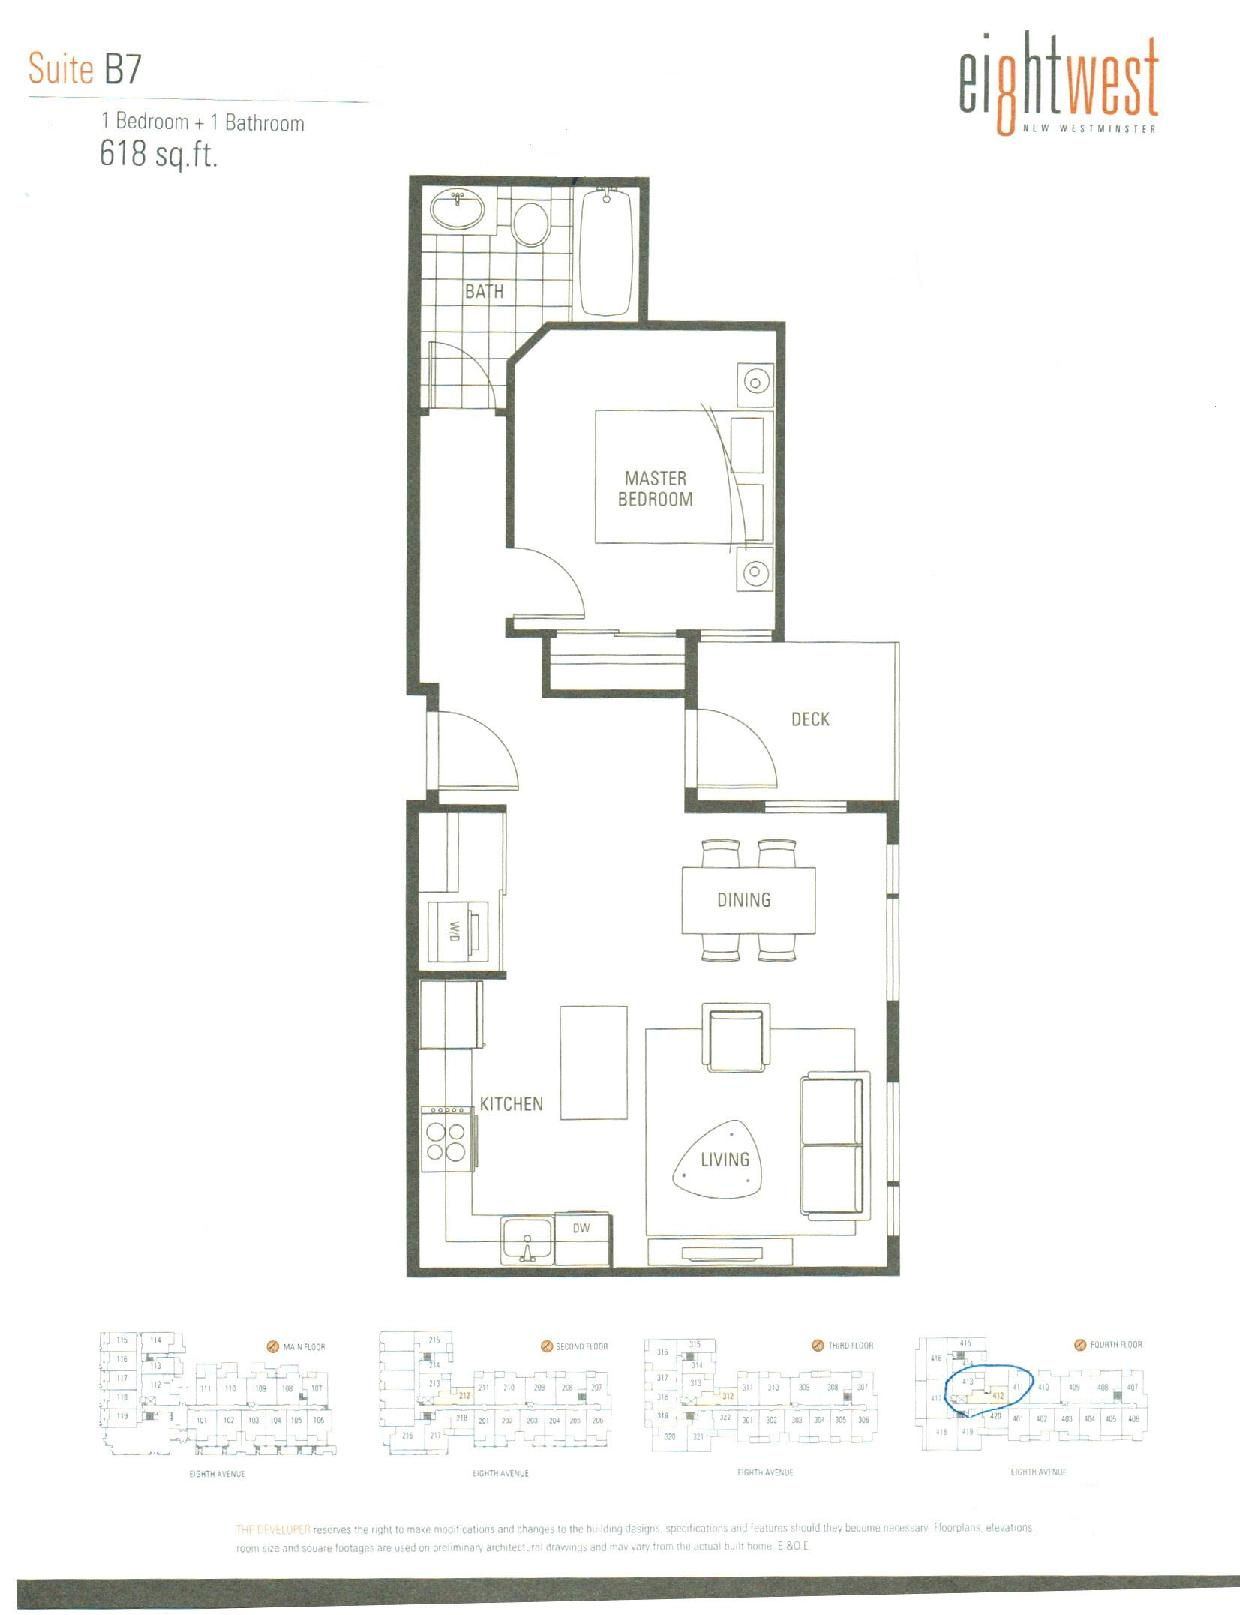 floor plan-page-001